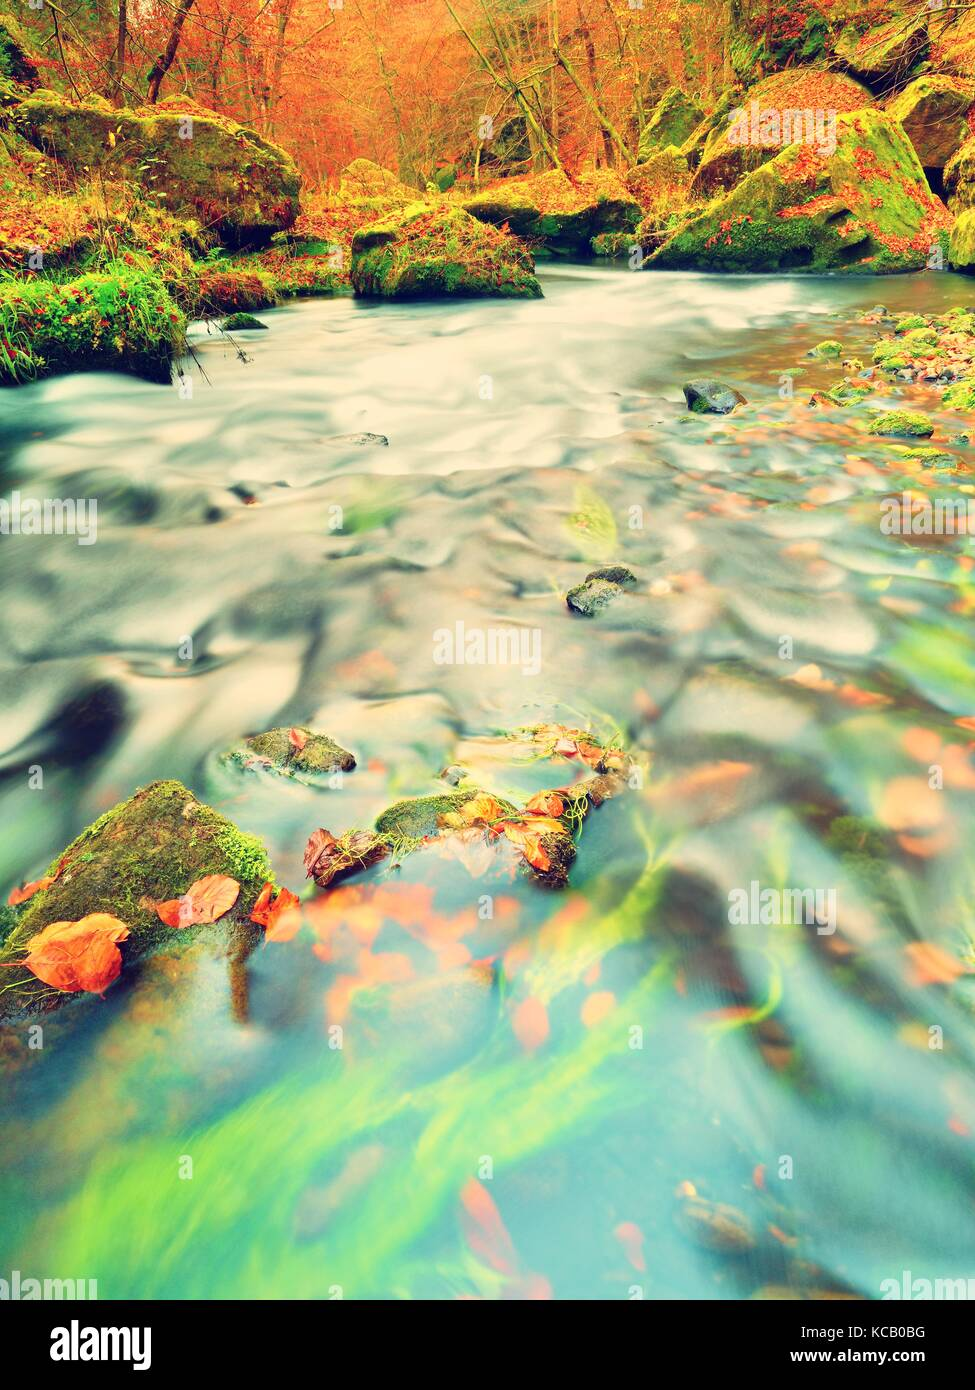 Fall in nature. Colors of autumn mountain river. Colorful gravel with leaves, leaves trees bended above river. - Stock Image